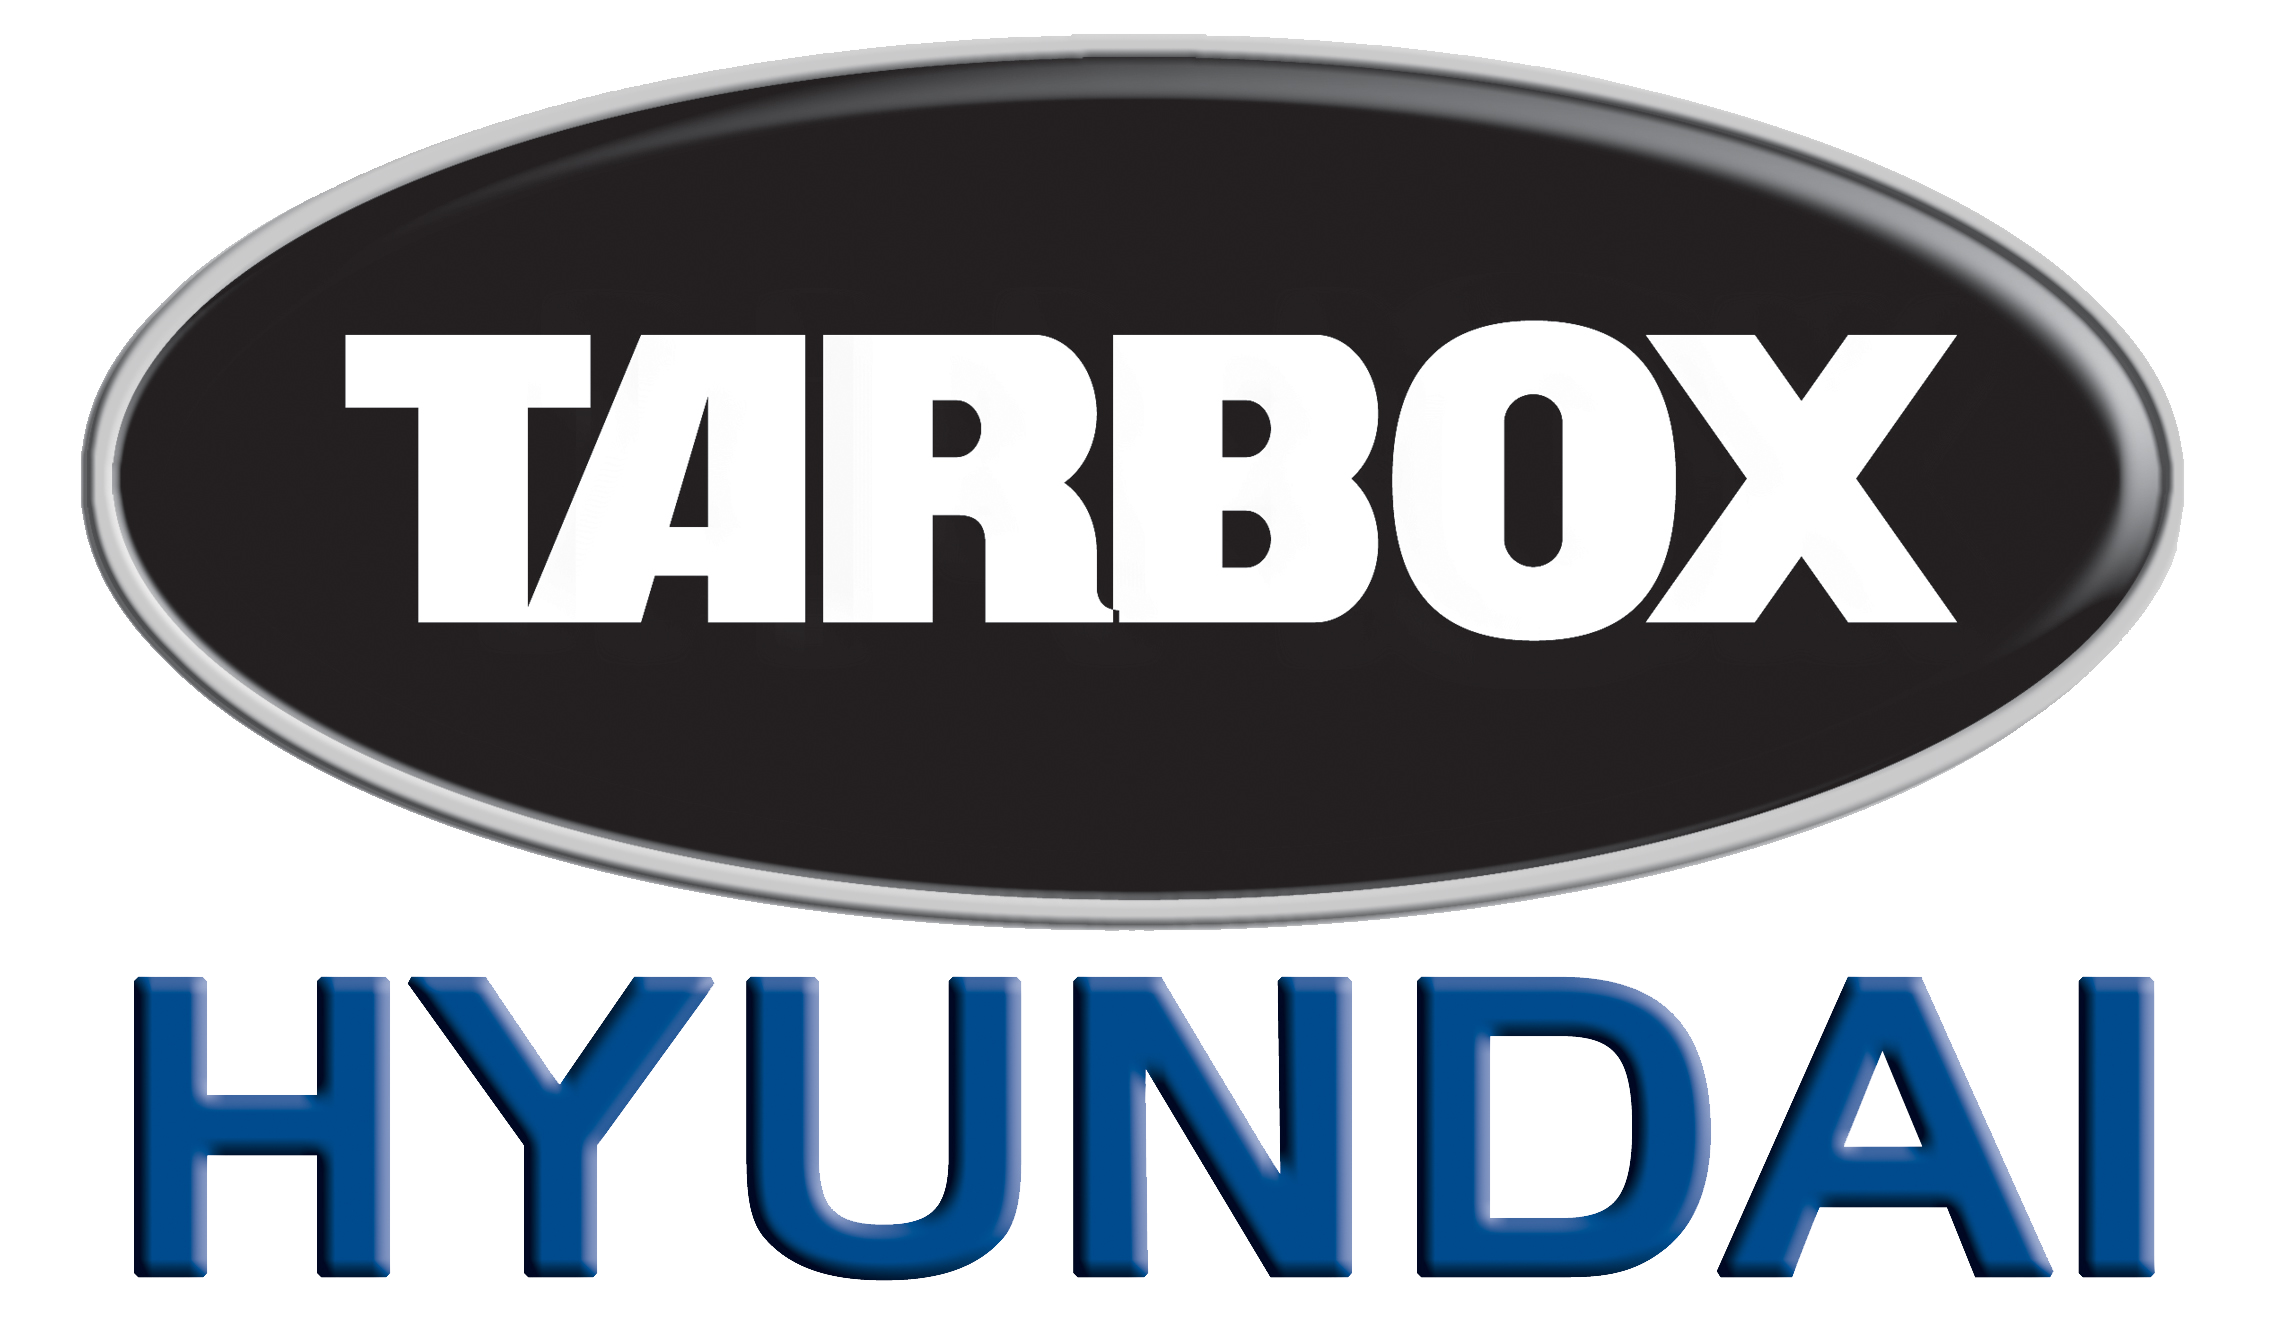 Welcome to Tarbox Hyundai | Hyundai Dealer in North Kingstown, RI